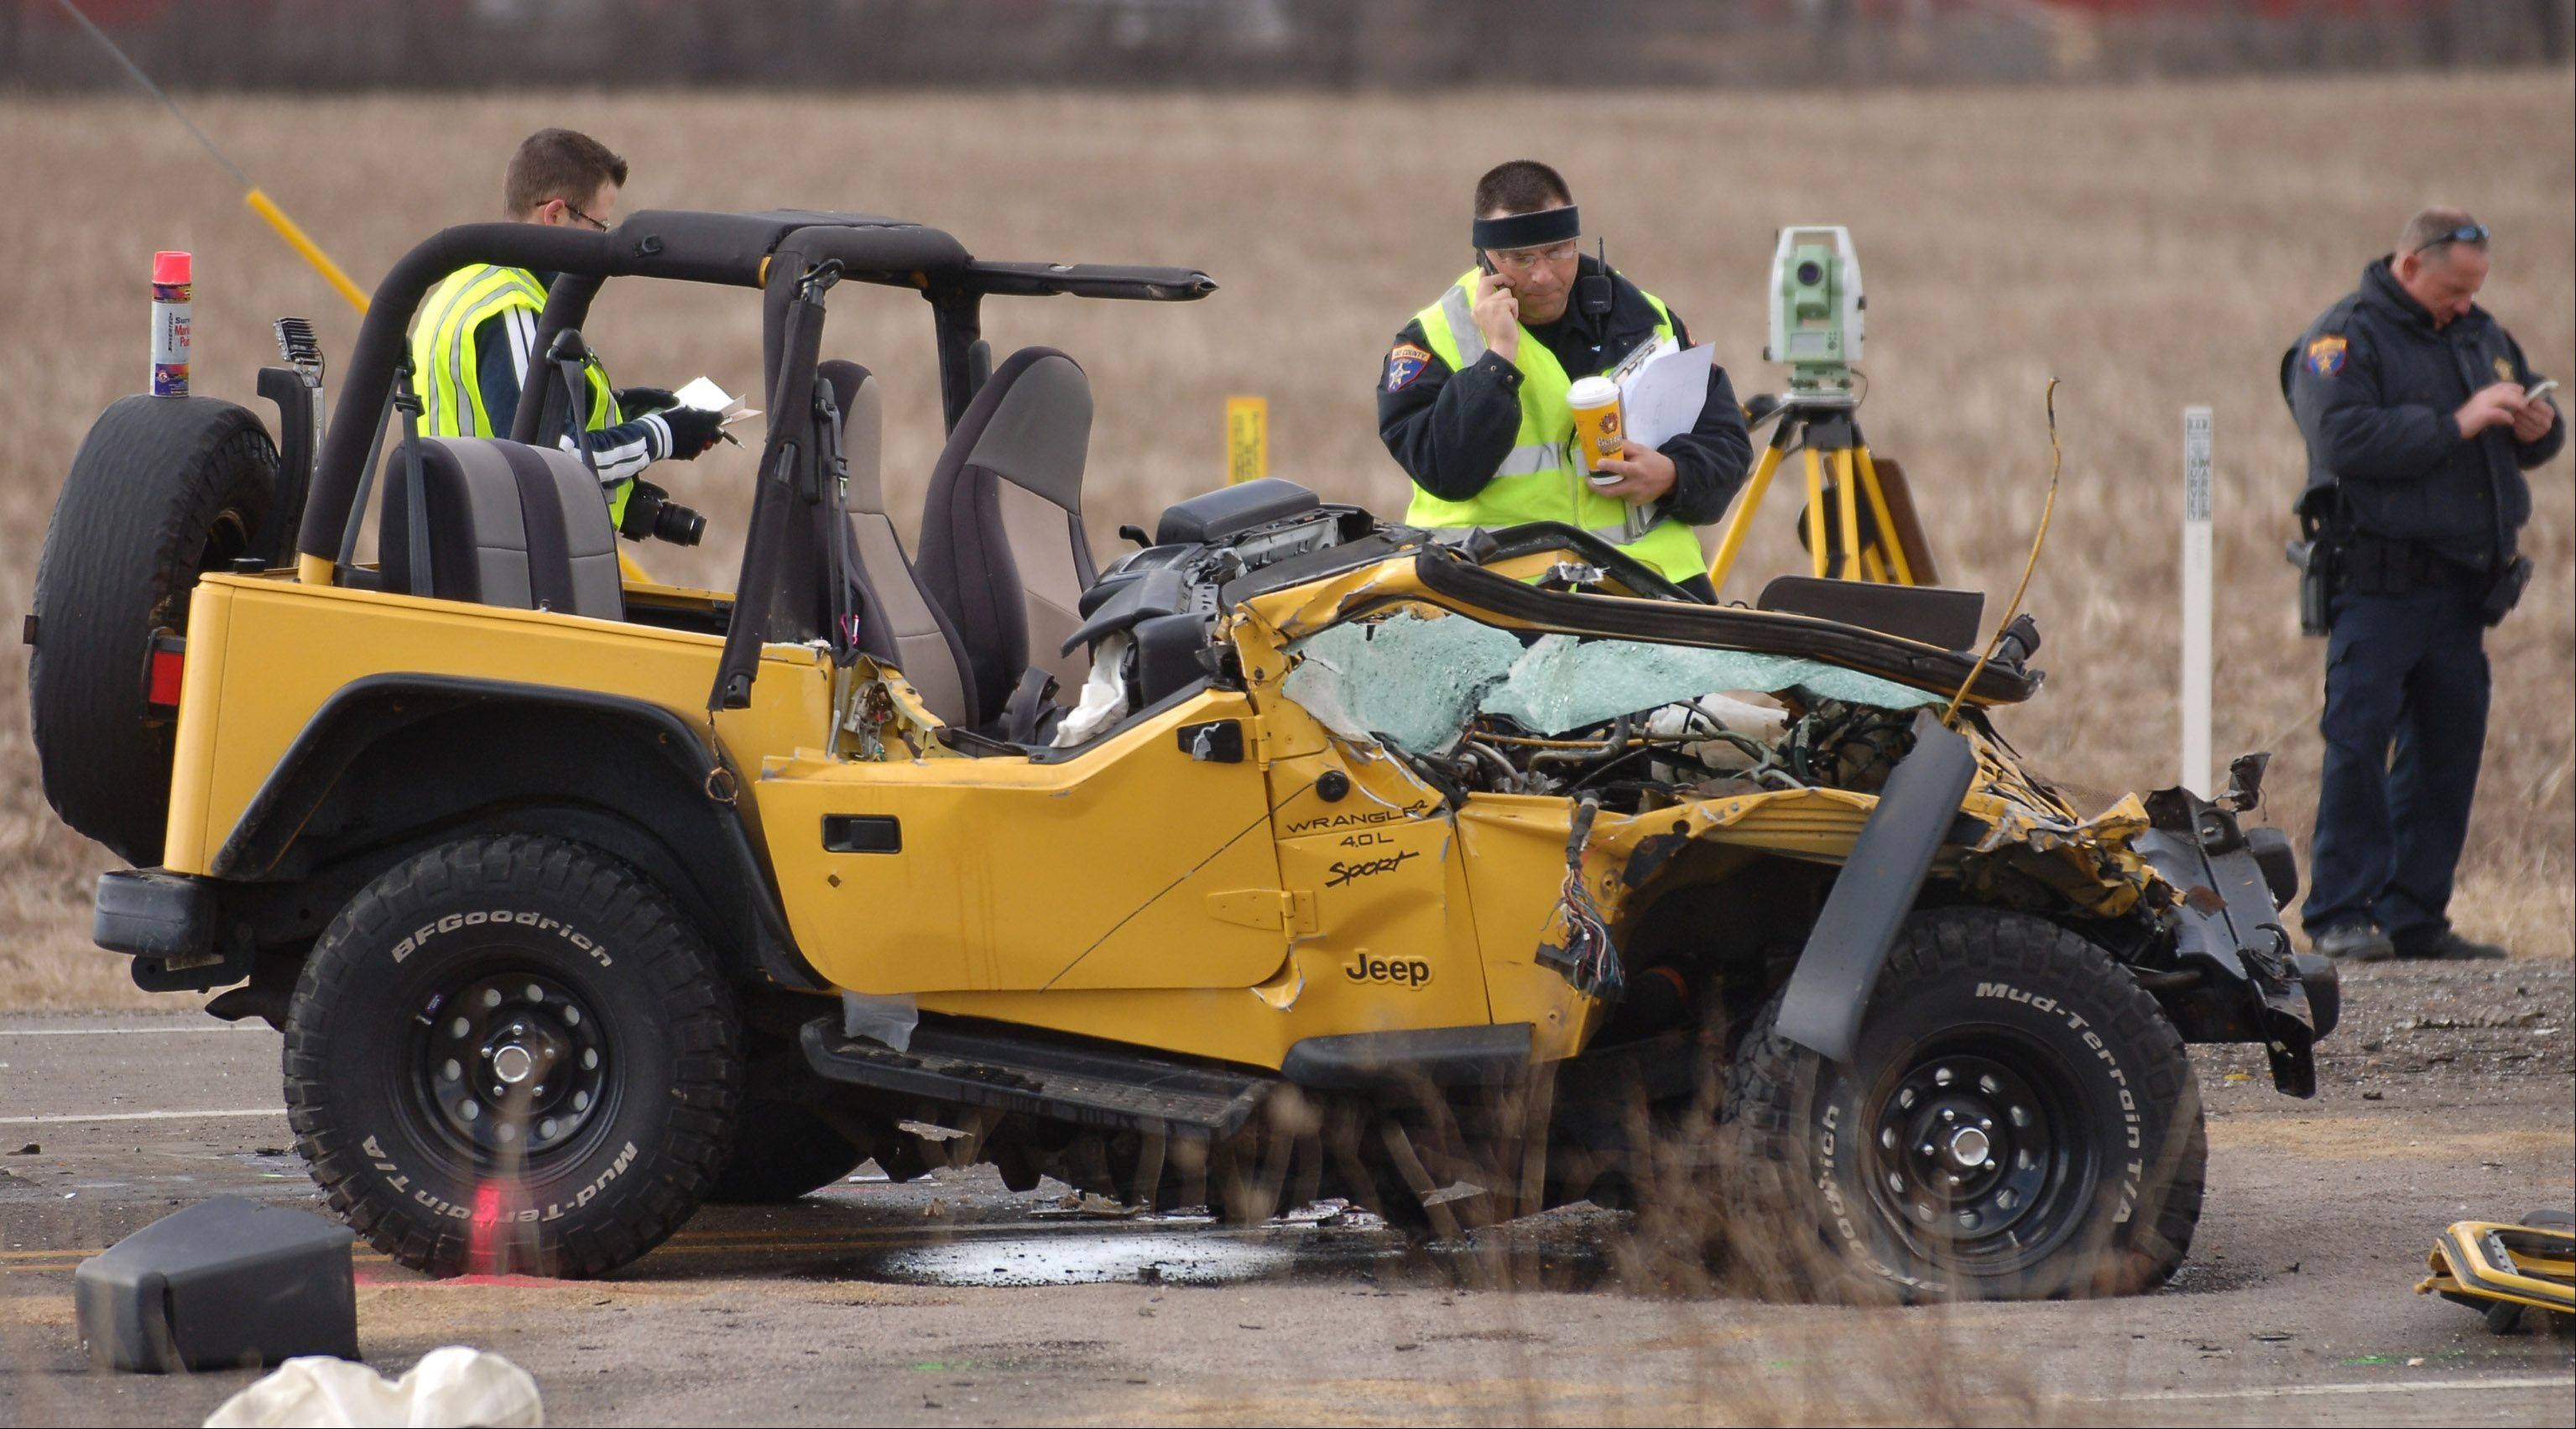 A Jeep Wrangler was badly damaged in a crash at Route 173 and N. Kilbourne Road near Wadsworth. The driver died in the crash, officials said.